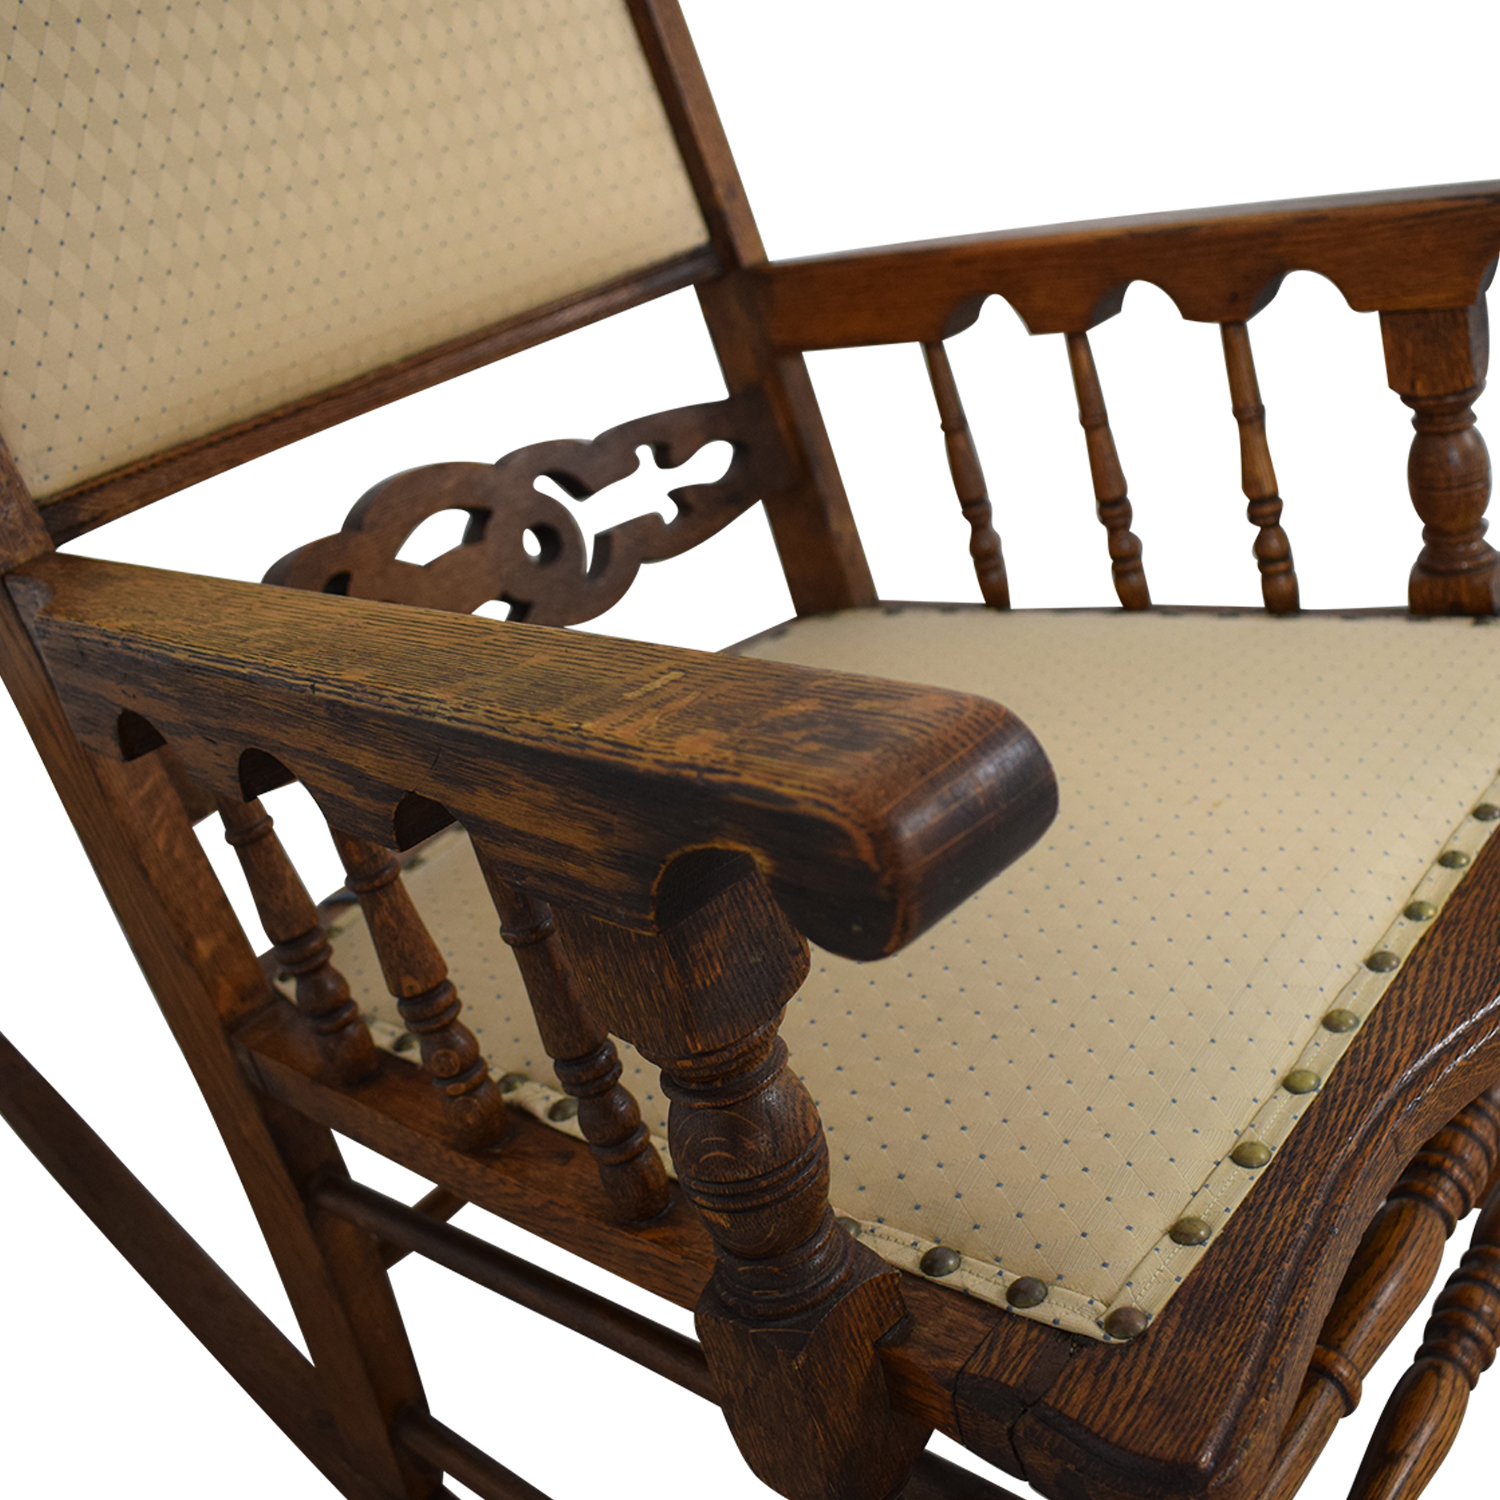 Rustic Rocking Chair dimensions